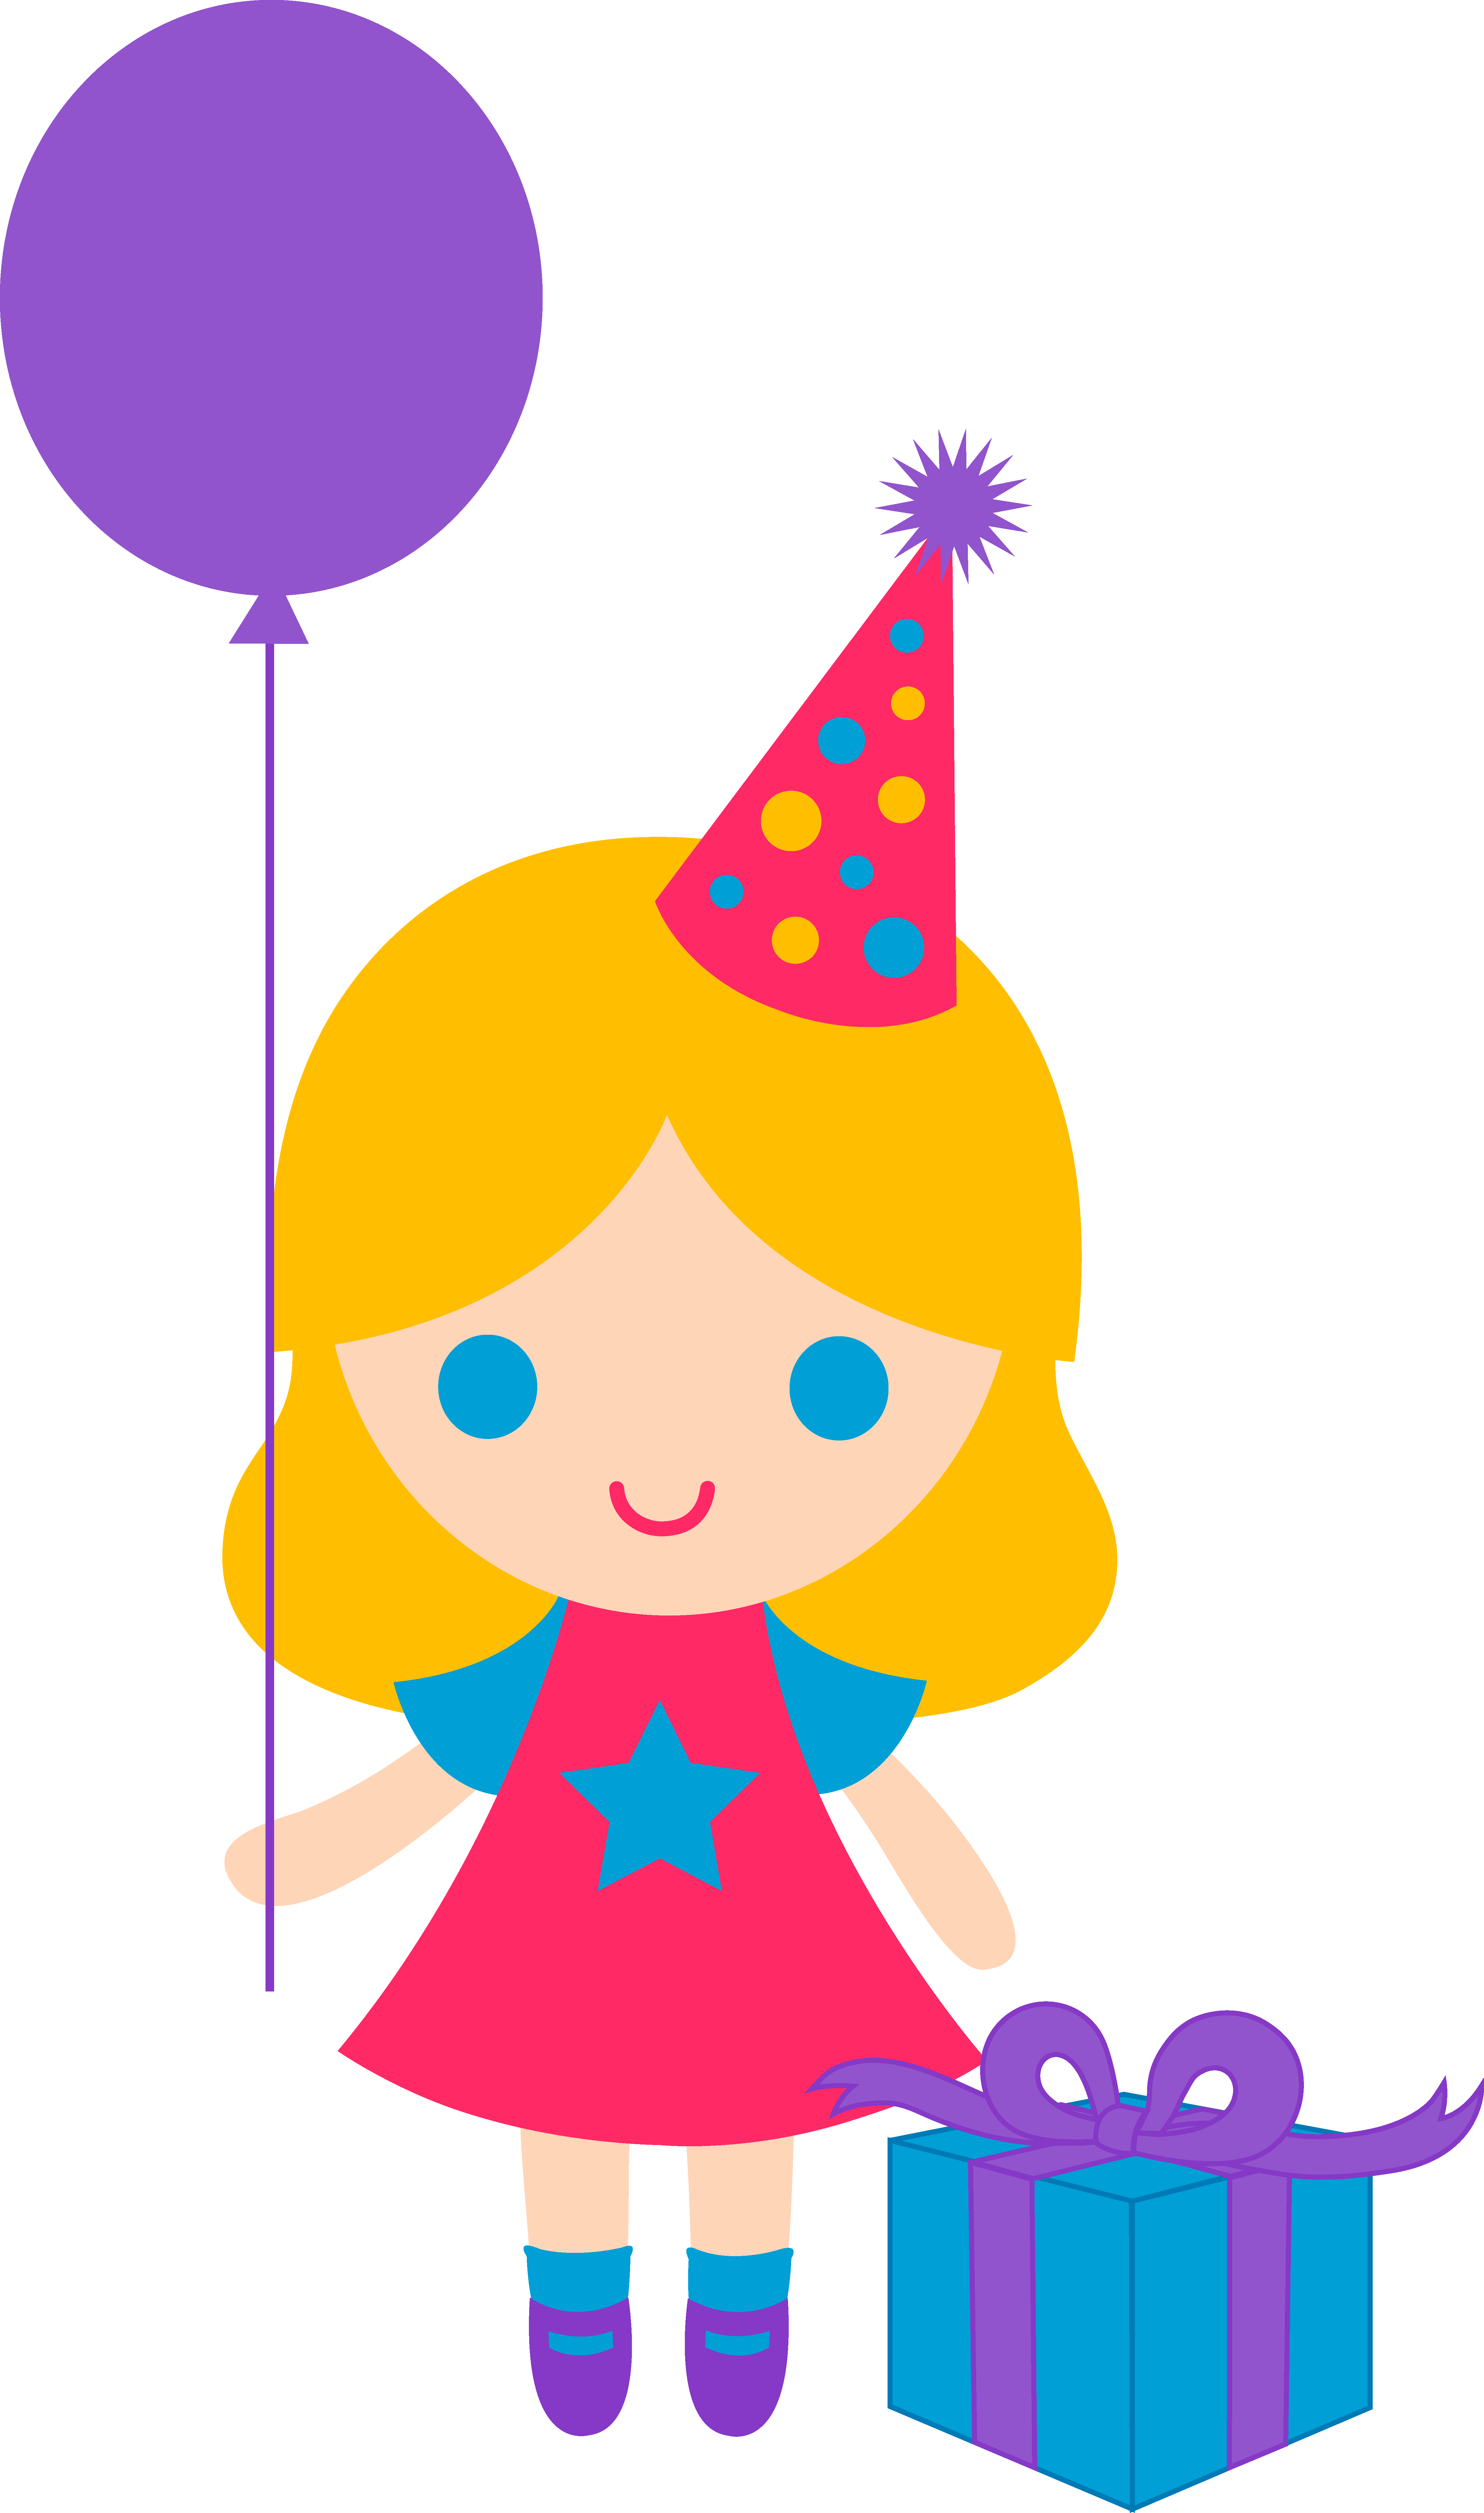 Hippie clipart first. Images of baby girls